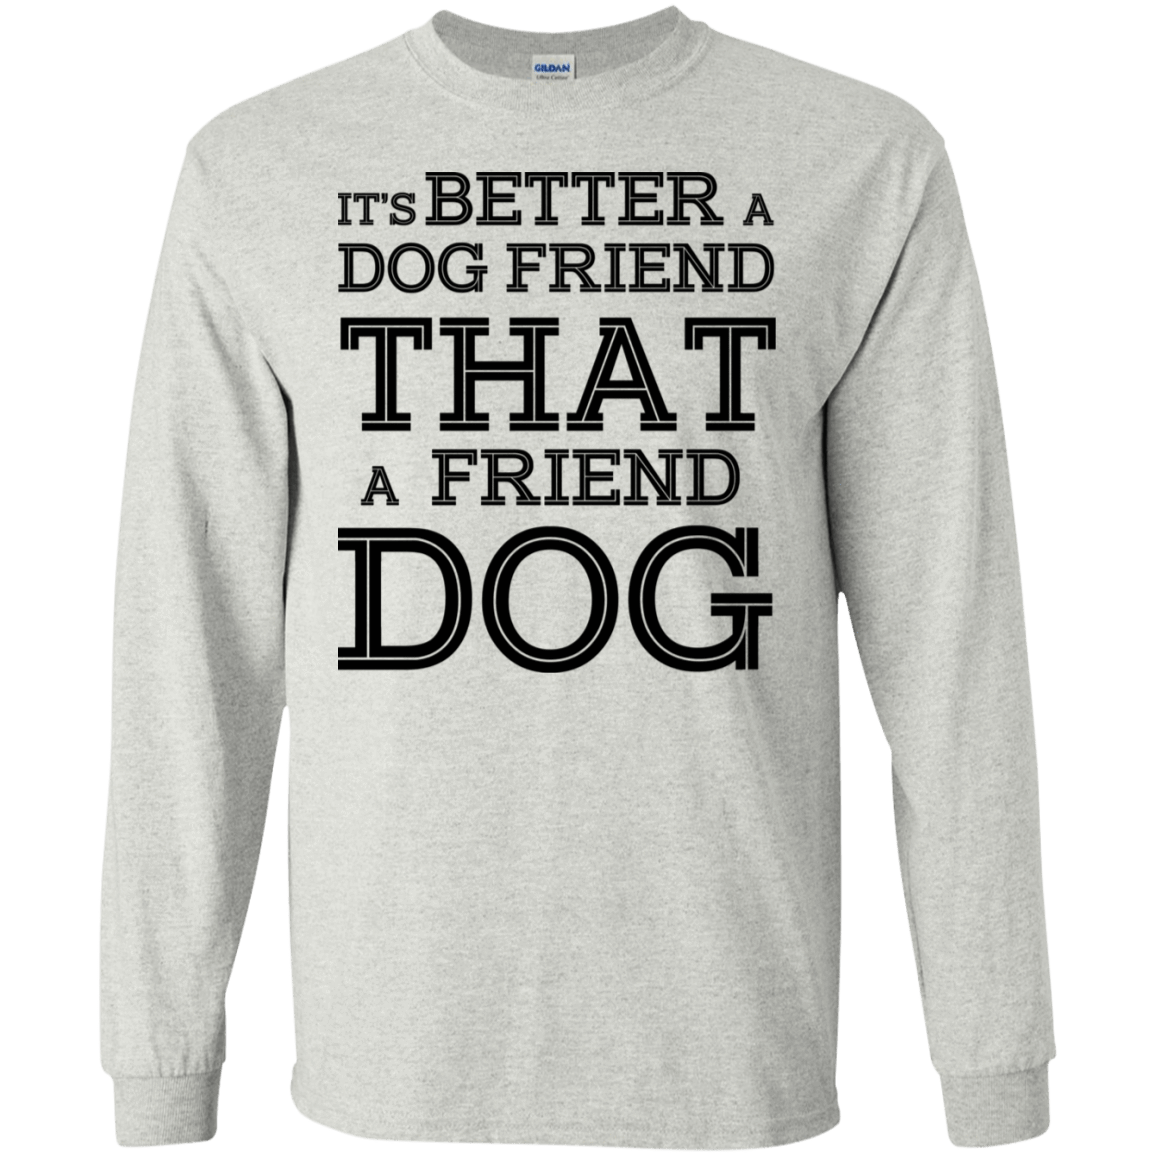 It's Better A Dog Friend That A Friend Dog 30-2112-73564856-10754 - Tee Ript